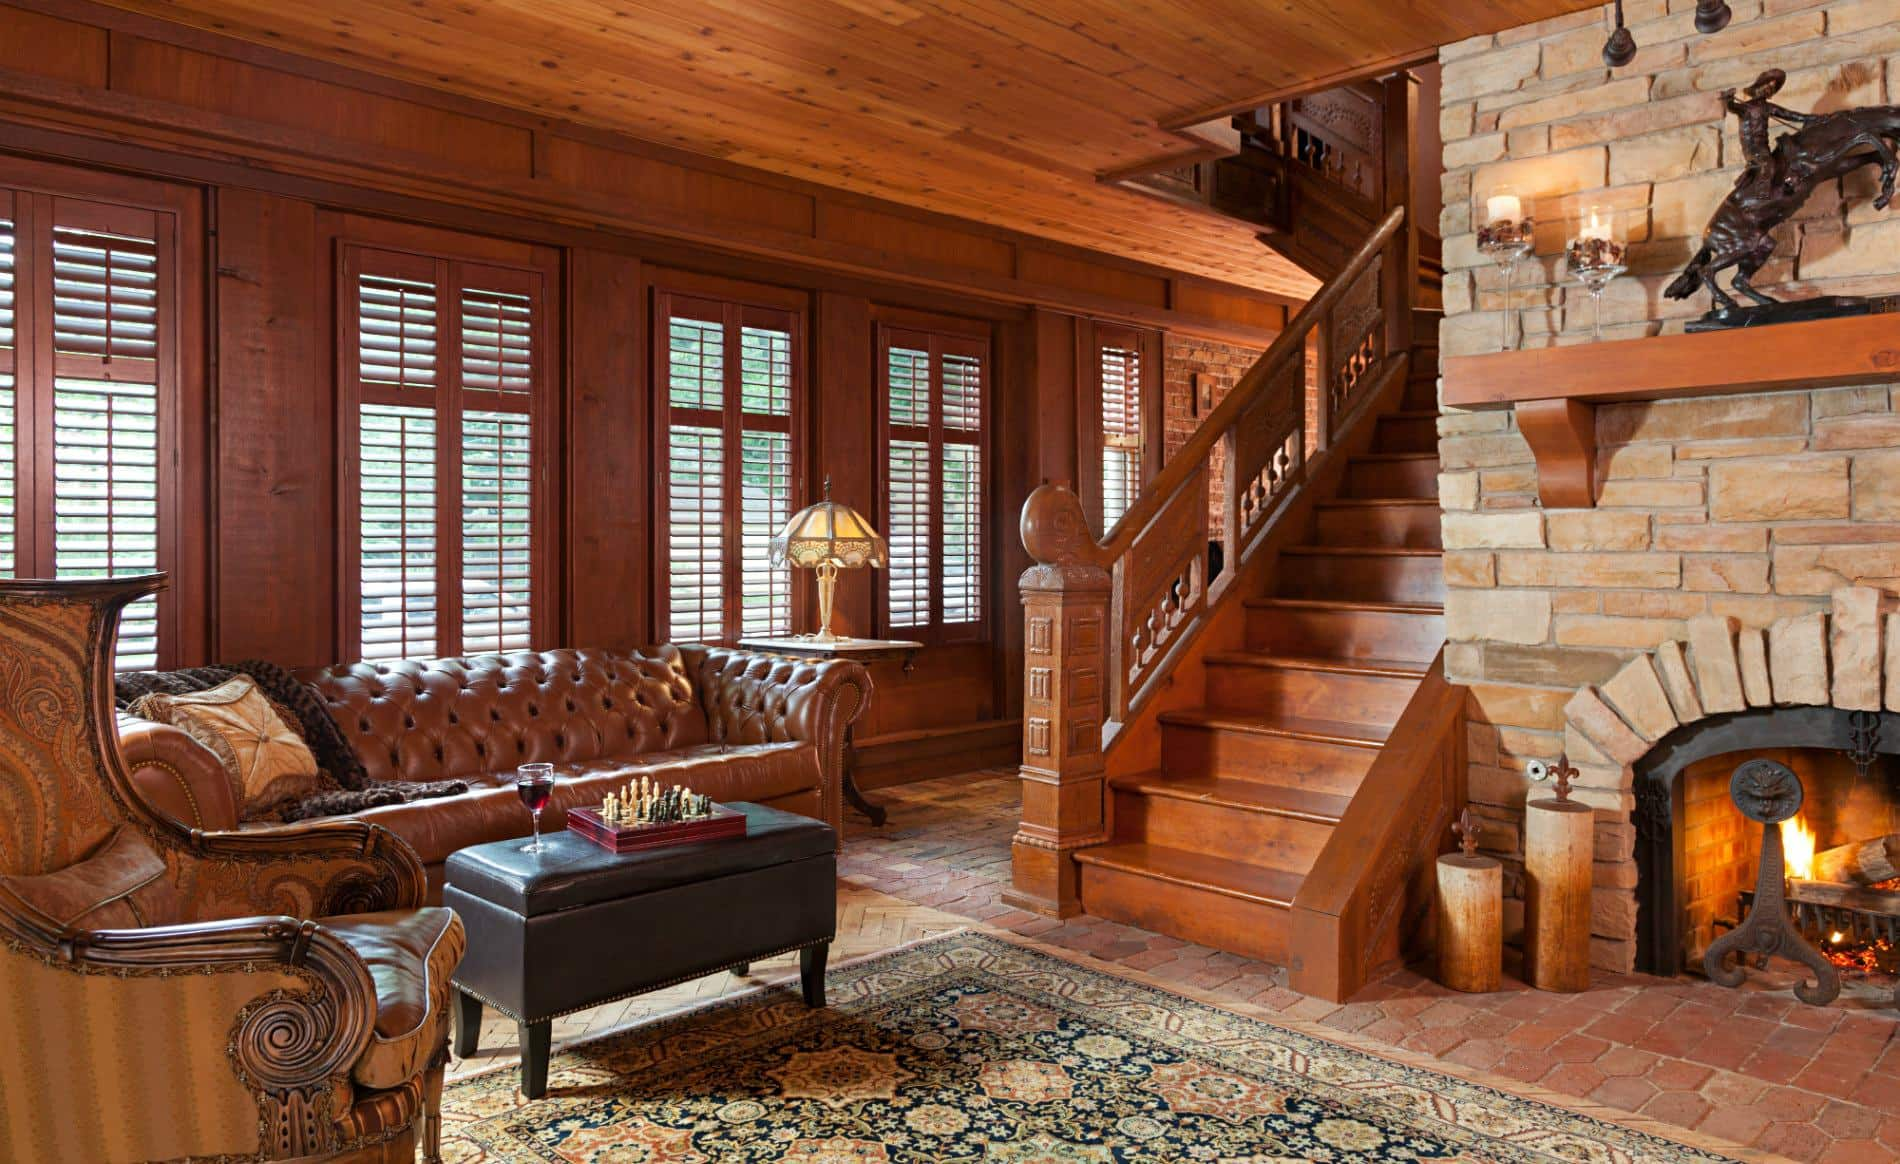 Cozy room with wood paneled ceilings, wood and brick floor, stone fireplace, leather sofa and leather ottoman with chess board